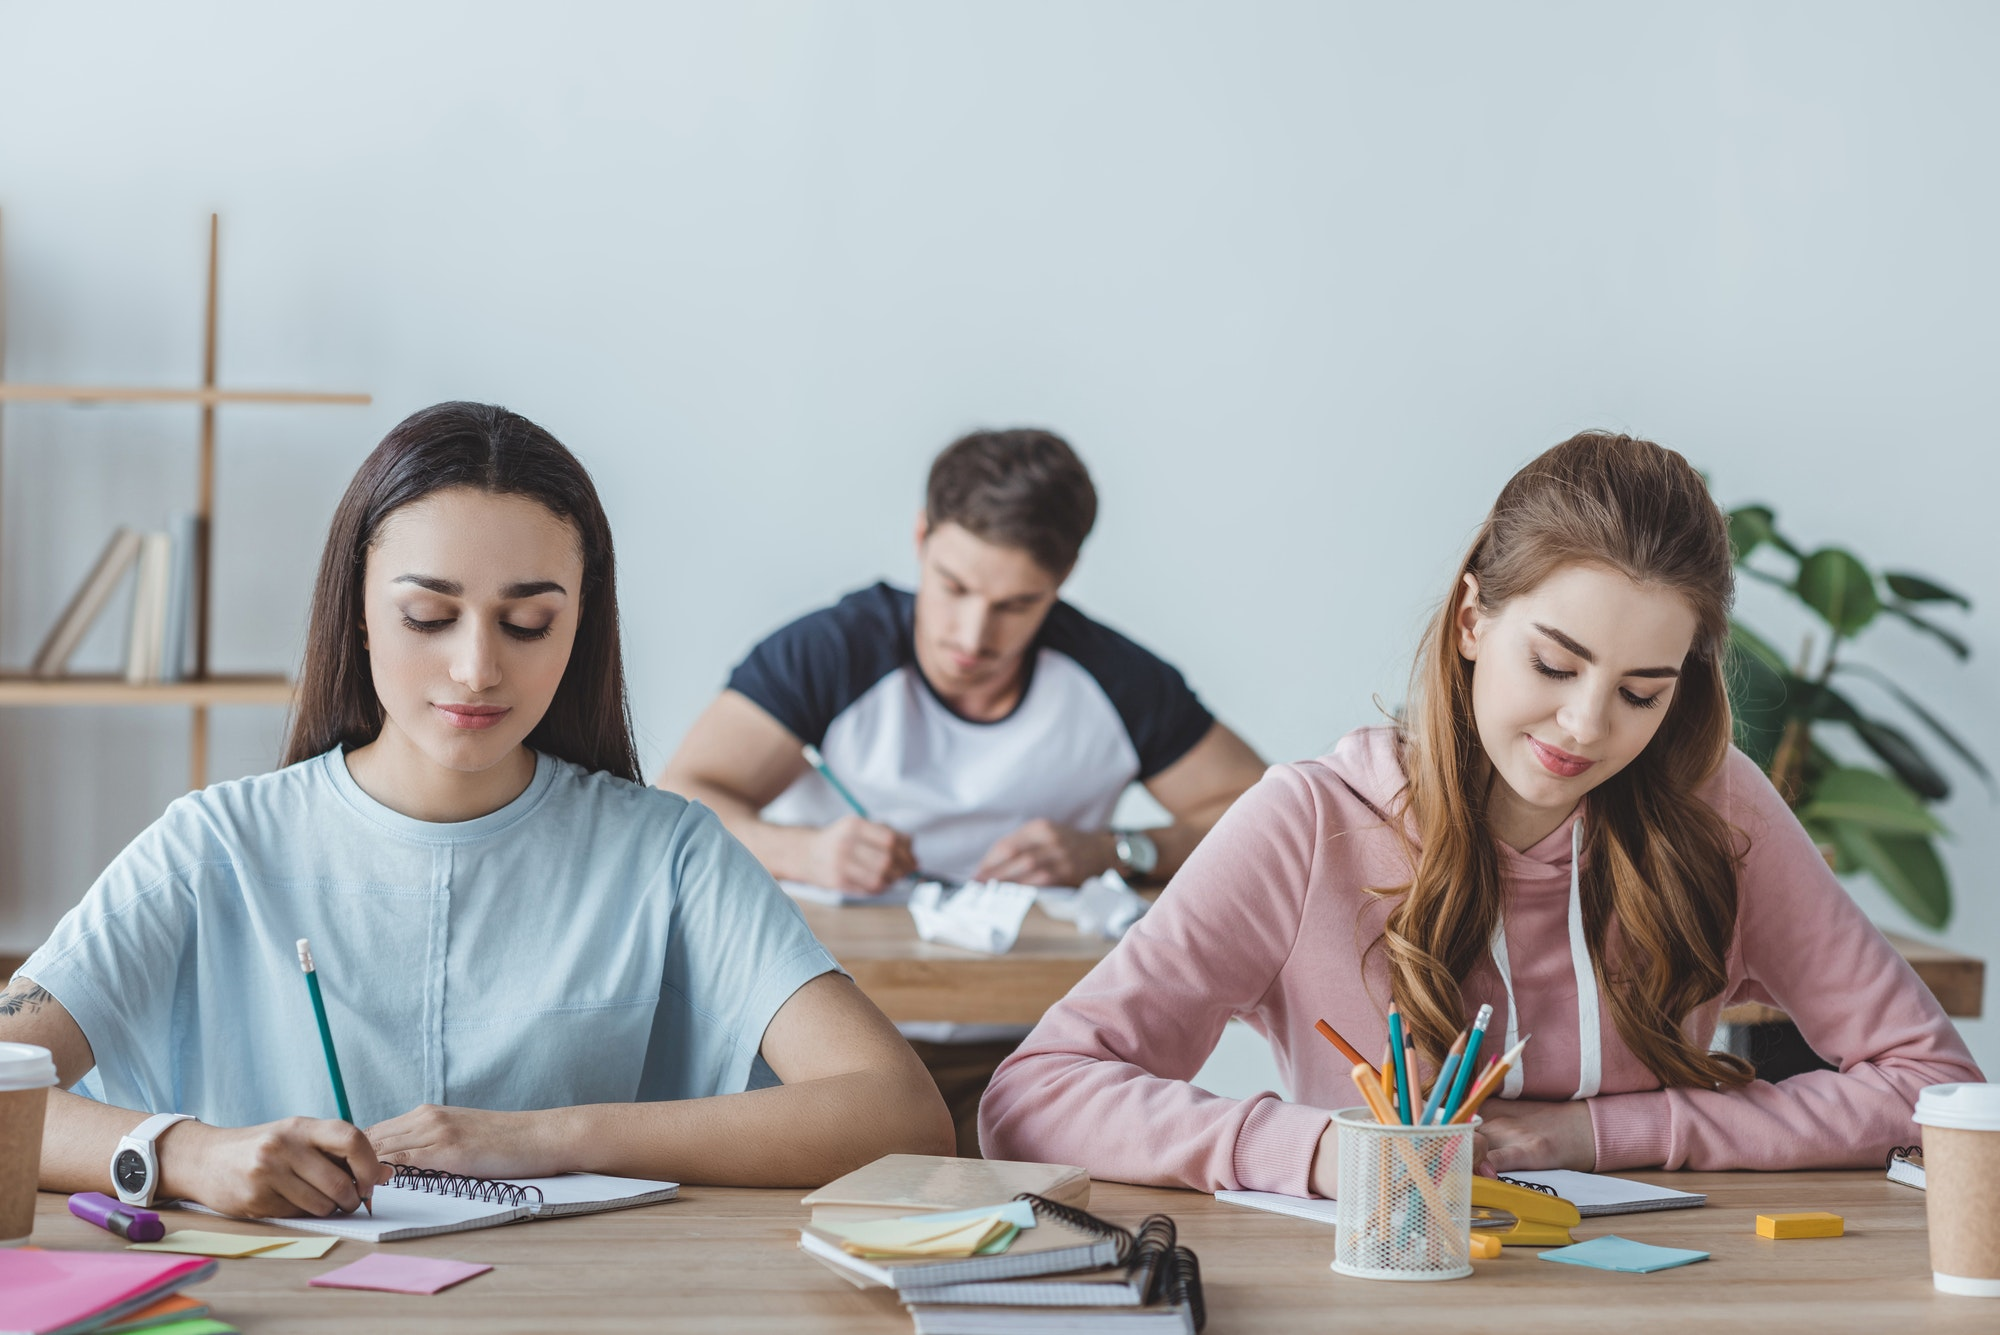 young students sitting at tables and writing exam together